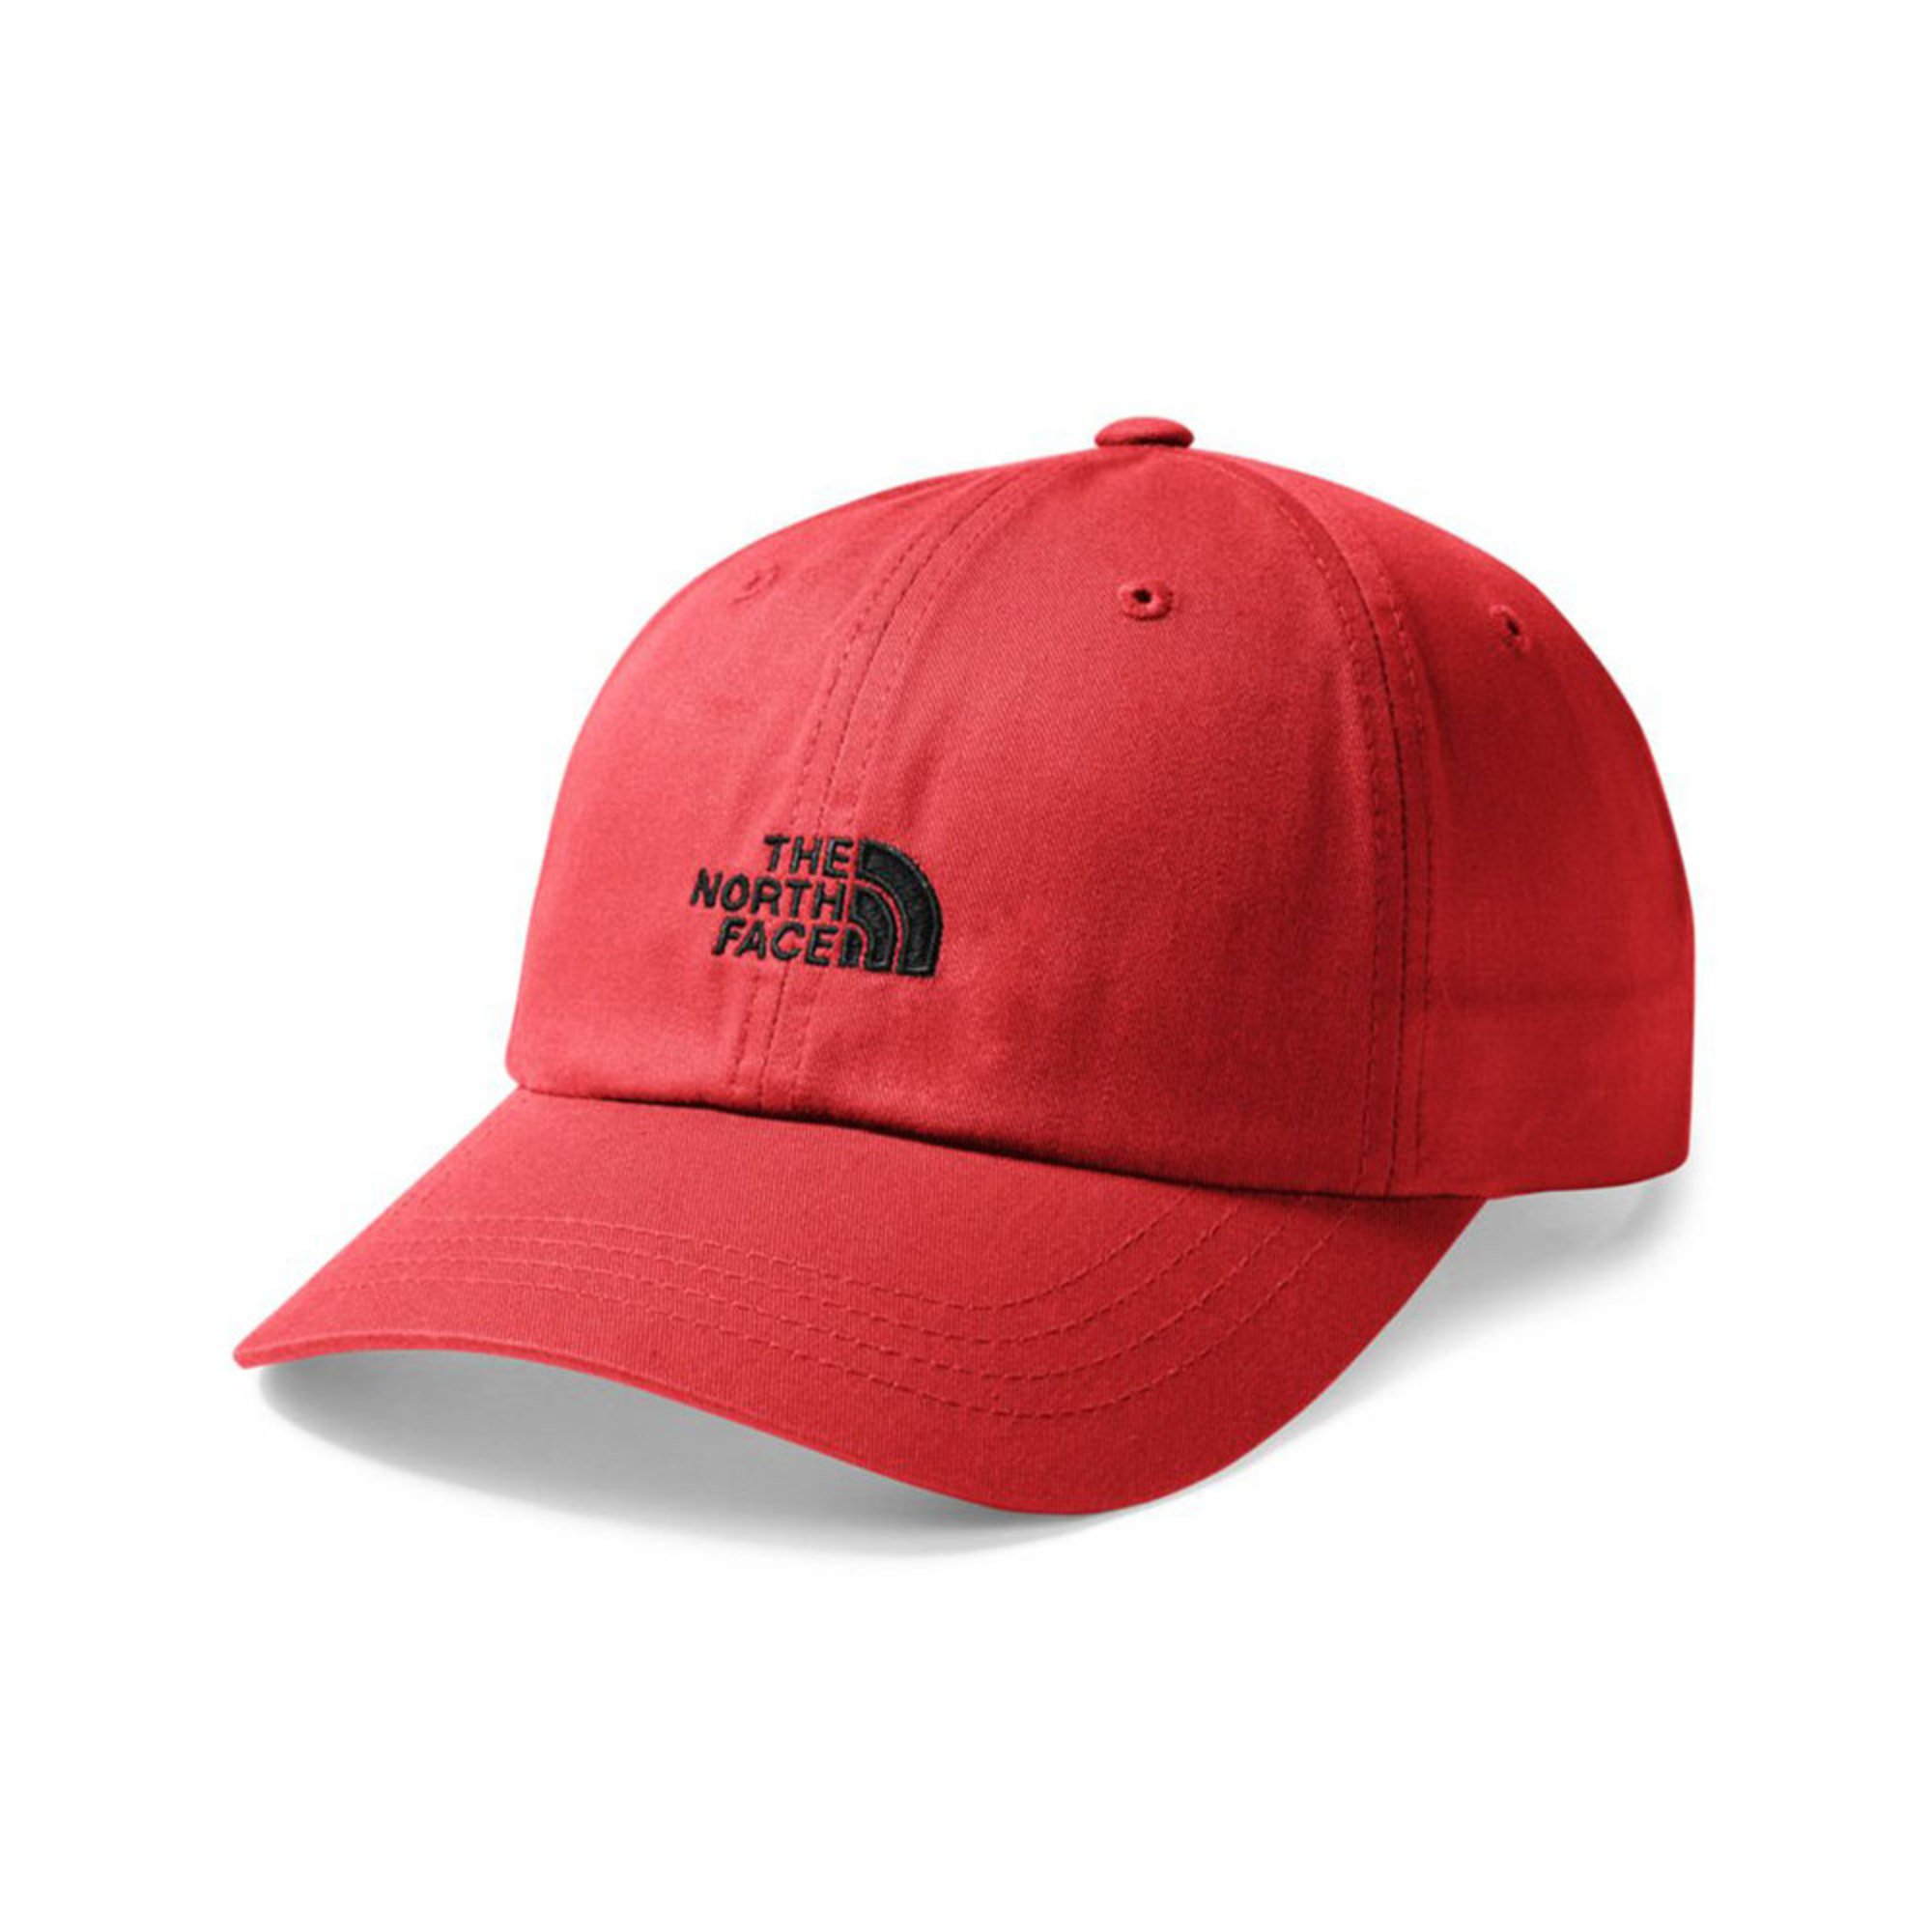 The North Face Men s The Norm Dad Hat  b82f4aecda3